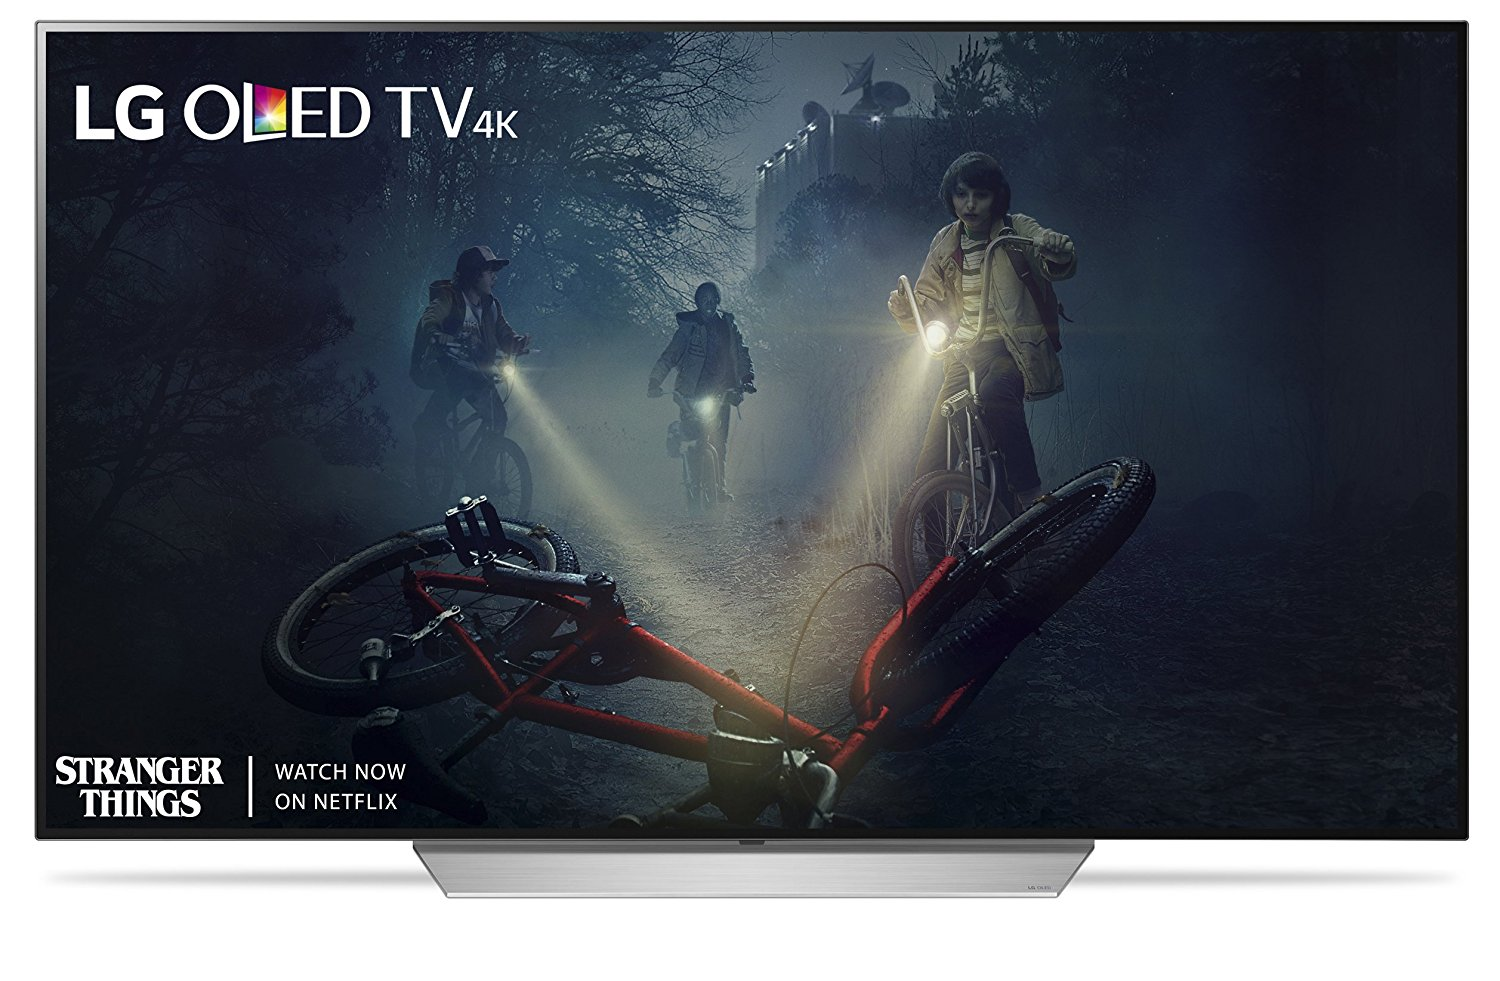 This is the first sale we've seen on the new [LG C7 55-inch OLED TV](https://www.amazon.com/dp/B01MZF7WCT?tag=toolstoysdeals-20).